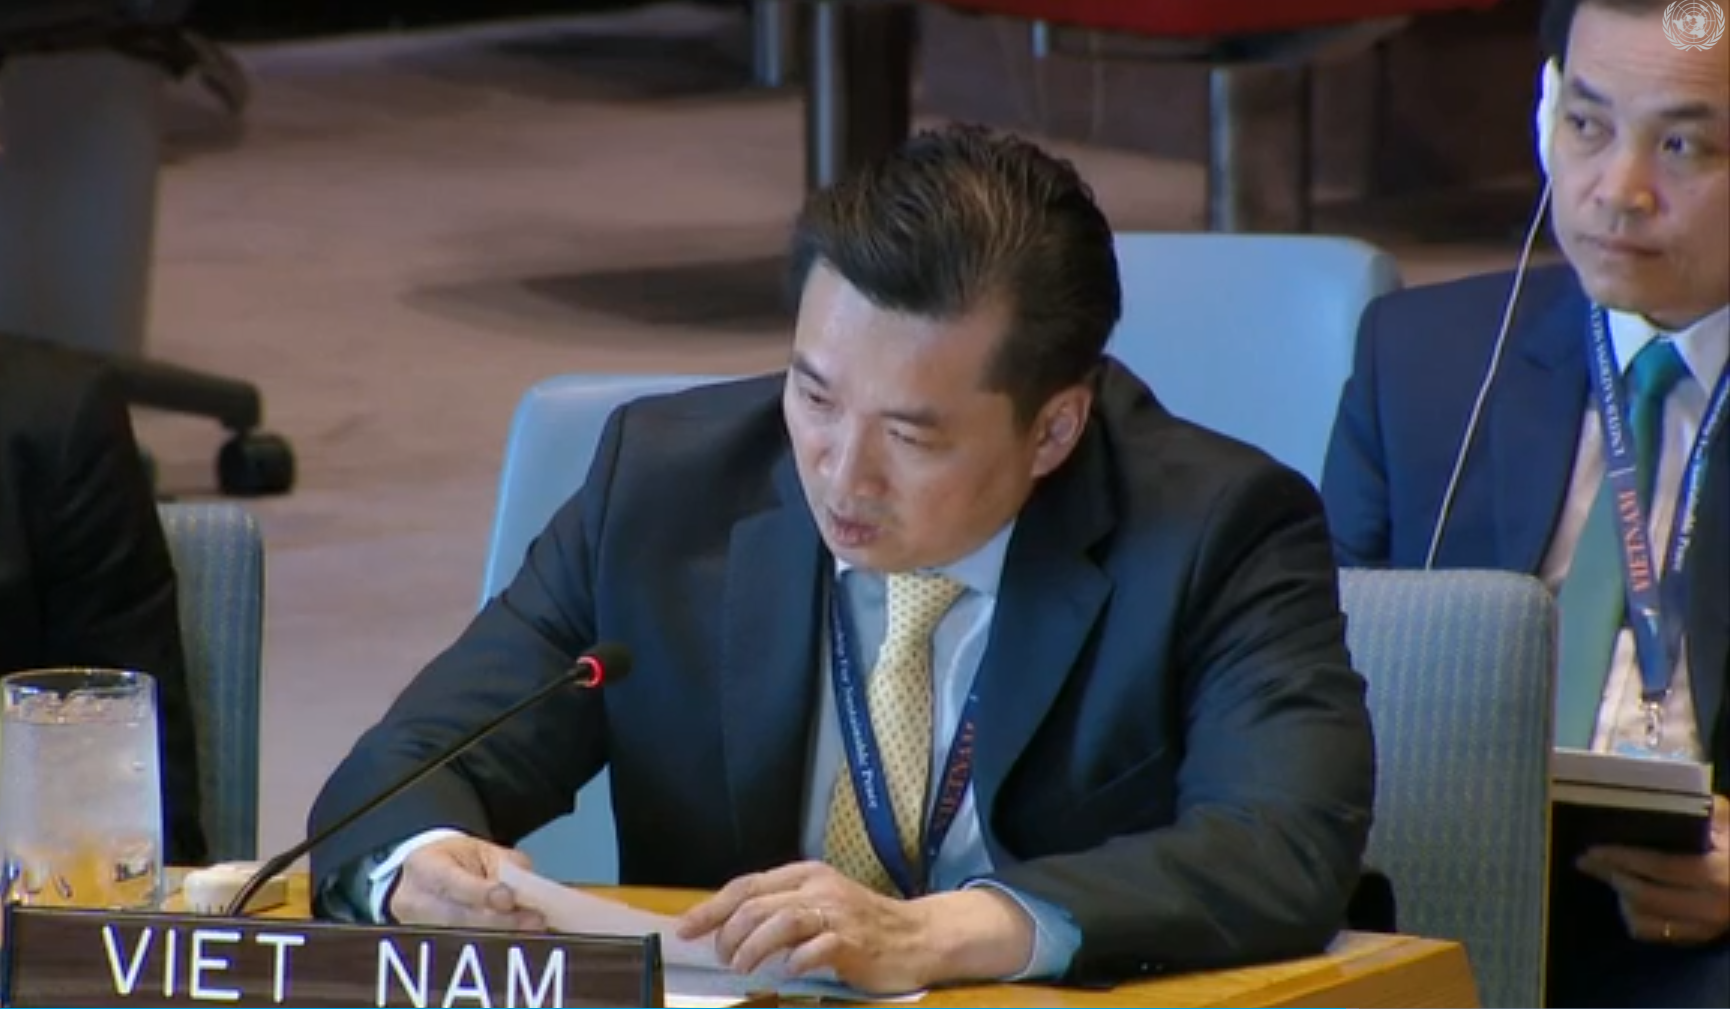 Vietnam urges countries to pledge to protect civilians during conflicts